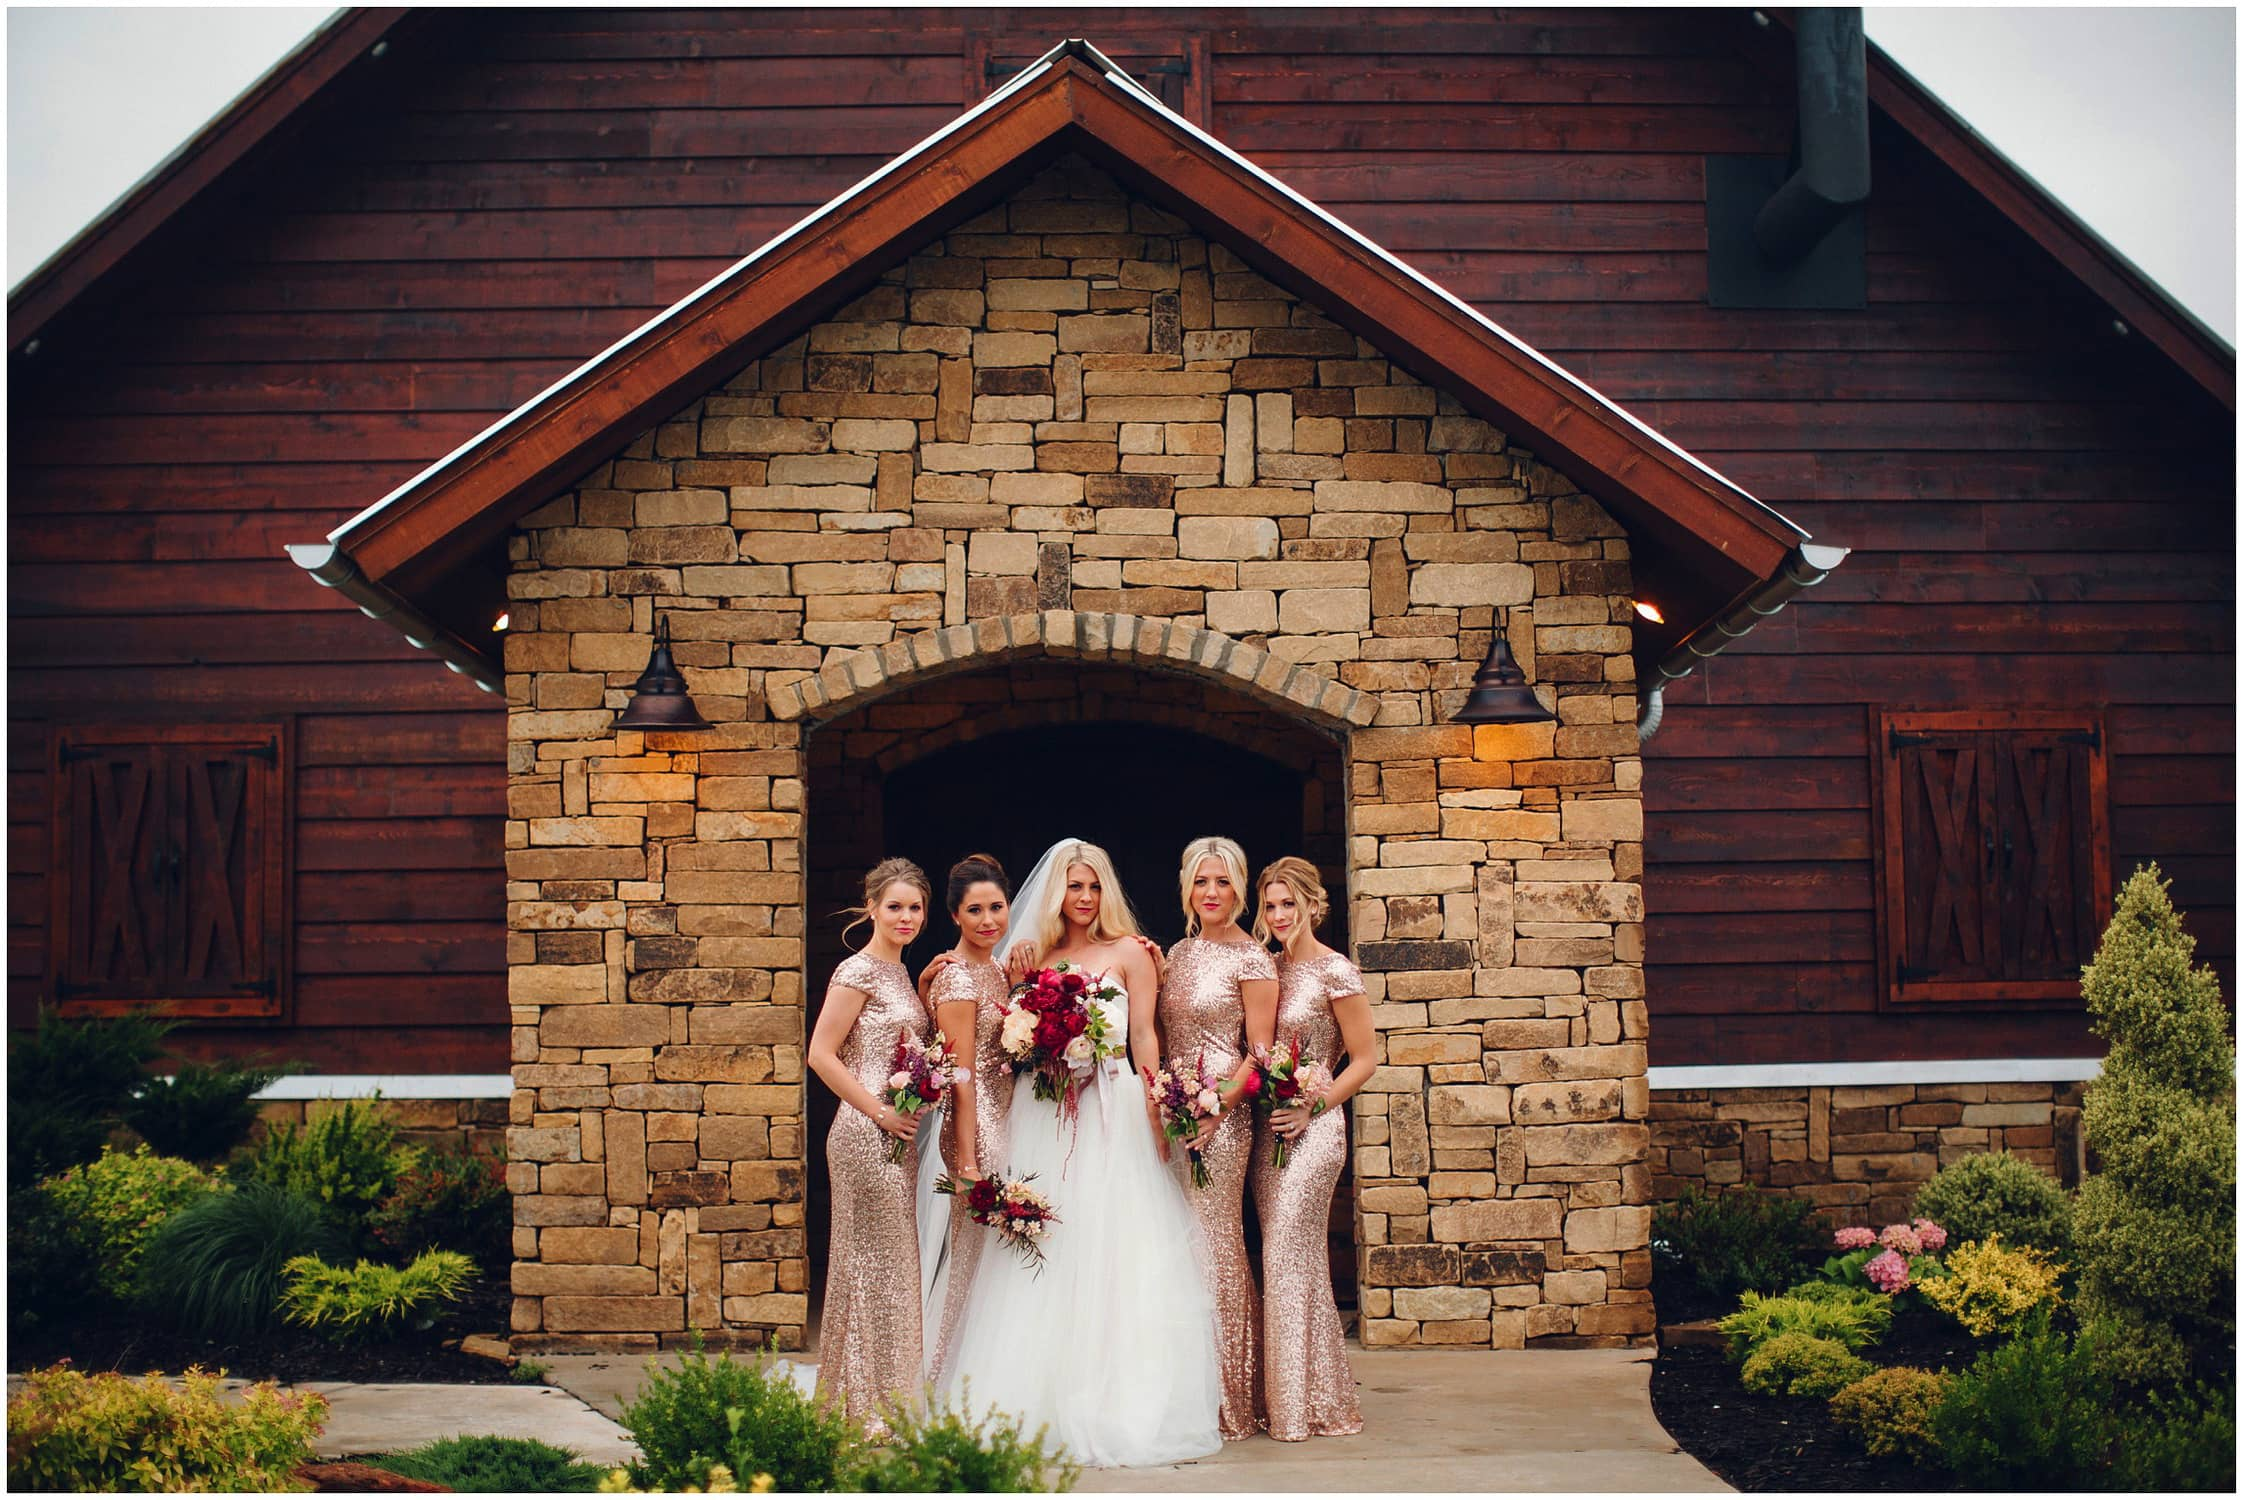 southwindhills_oklahoma_wedding0532_blogstomped